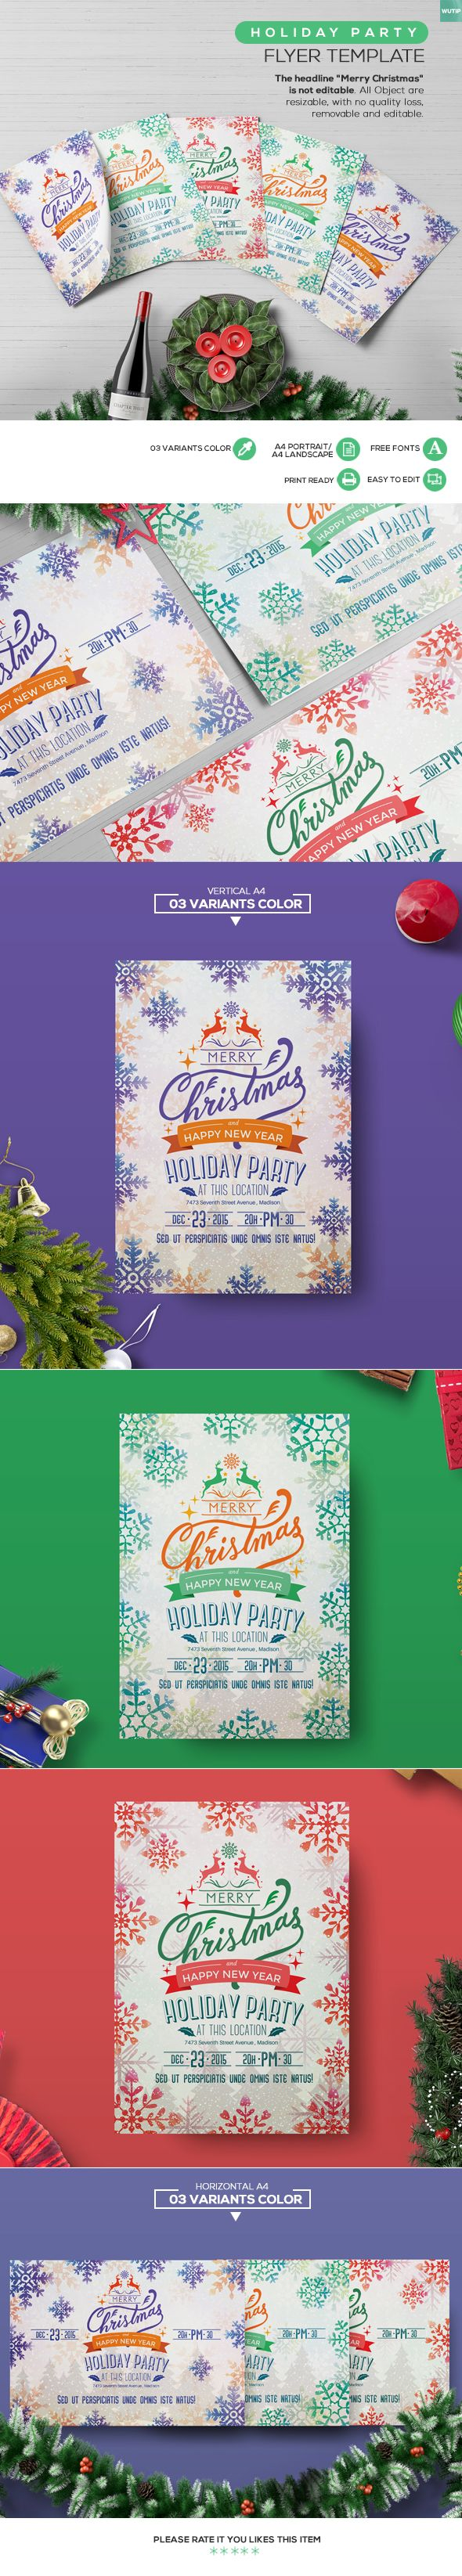 The Best Party Flyer Template Images On Pinterest Party Flyer - Holiday party flyer template free